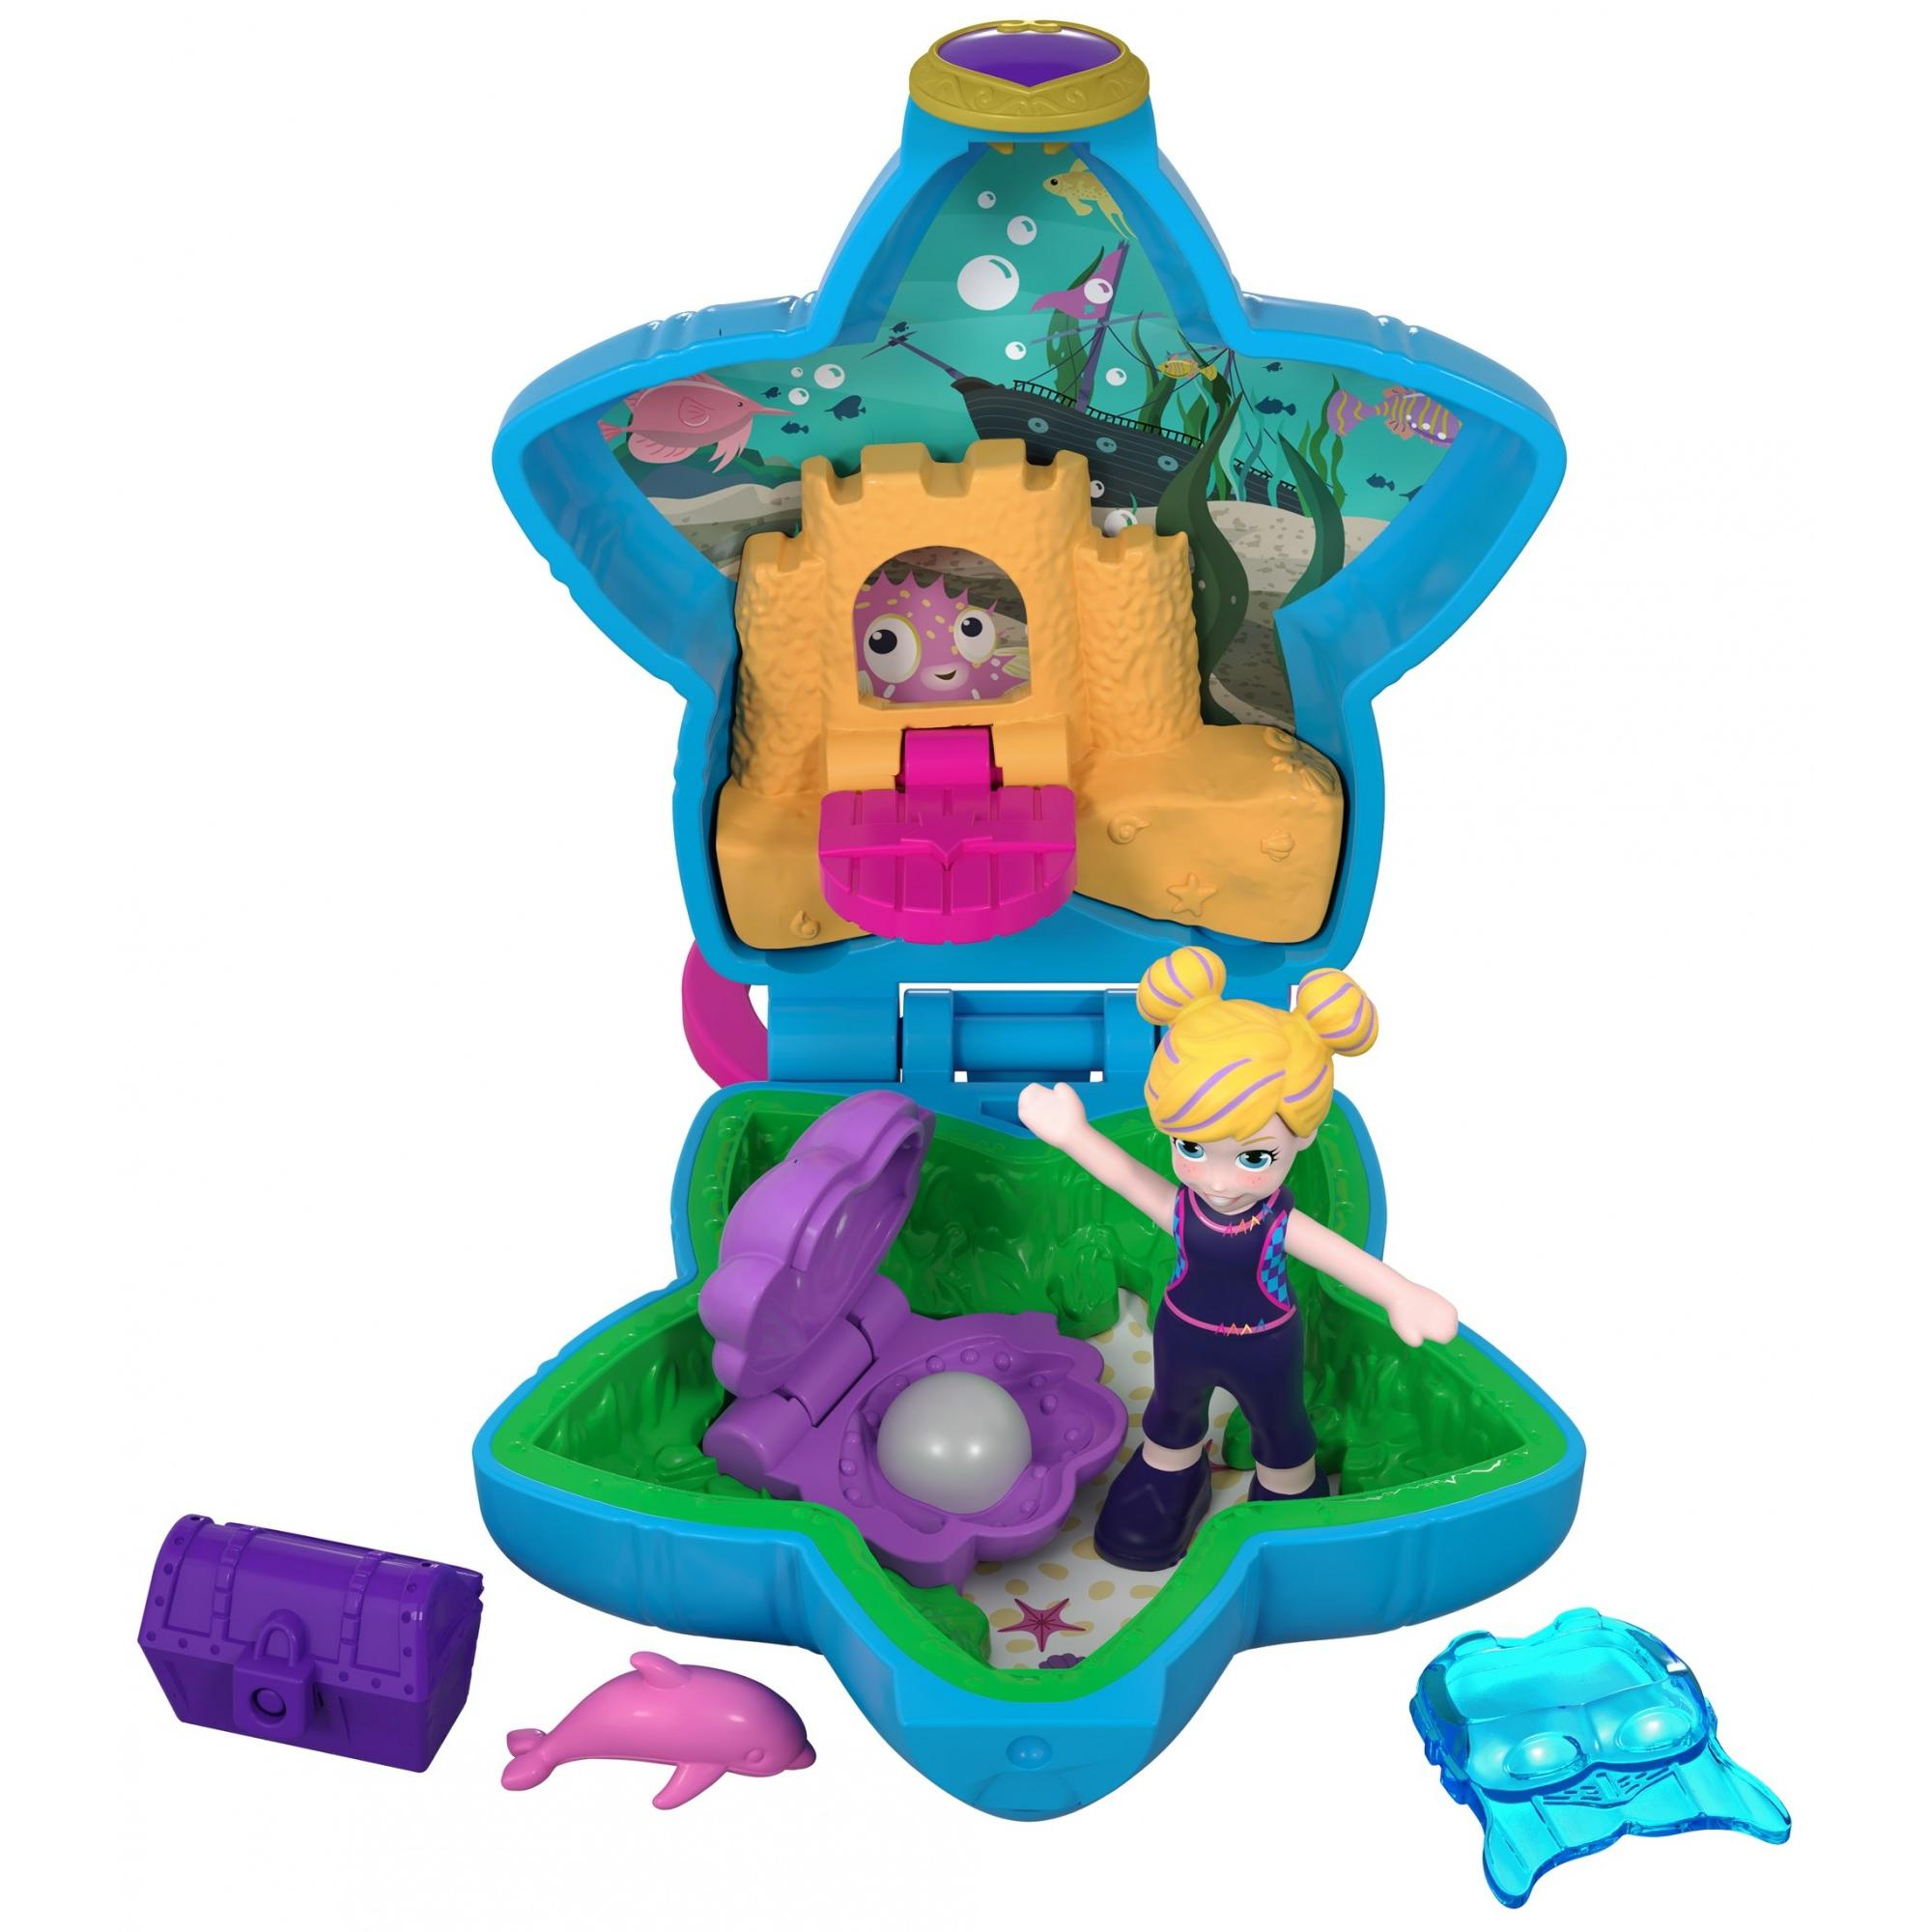 Polly Pocket Tiny Pocket Places Aqua Awesome Aquarium Compact with Micro Doll and Dolphin